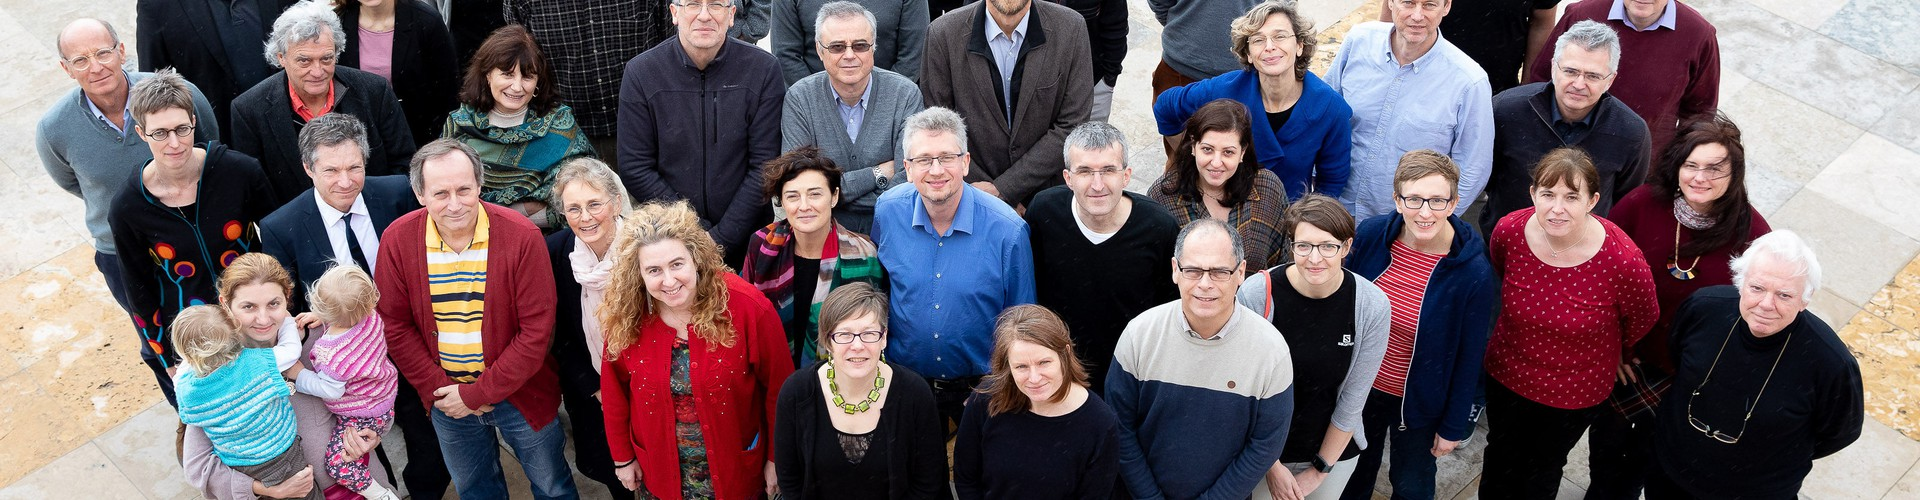 EGU Council members and others at the Programme Committee and Council February 2019 meetings